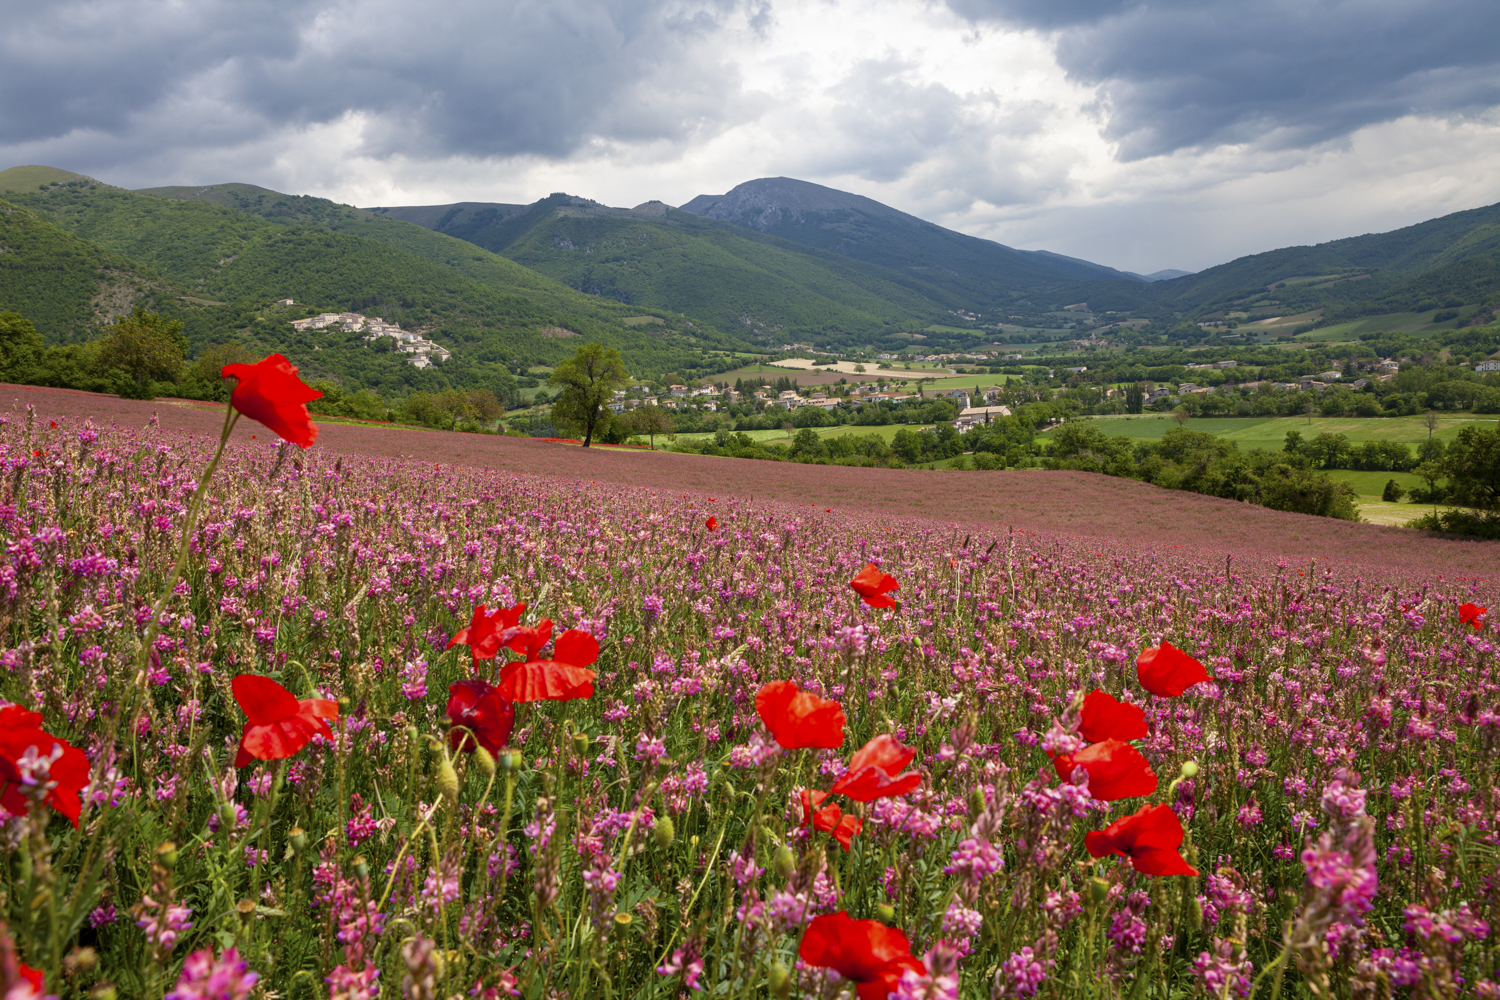 field of poppies with mountains in the background